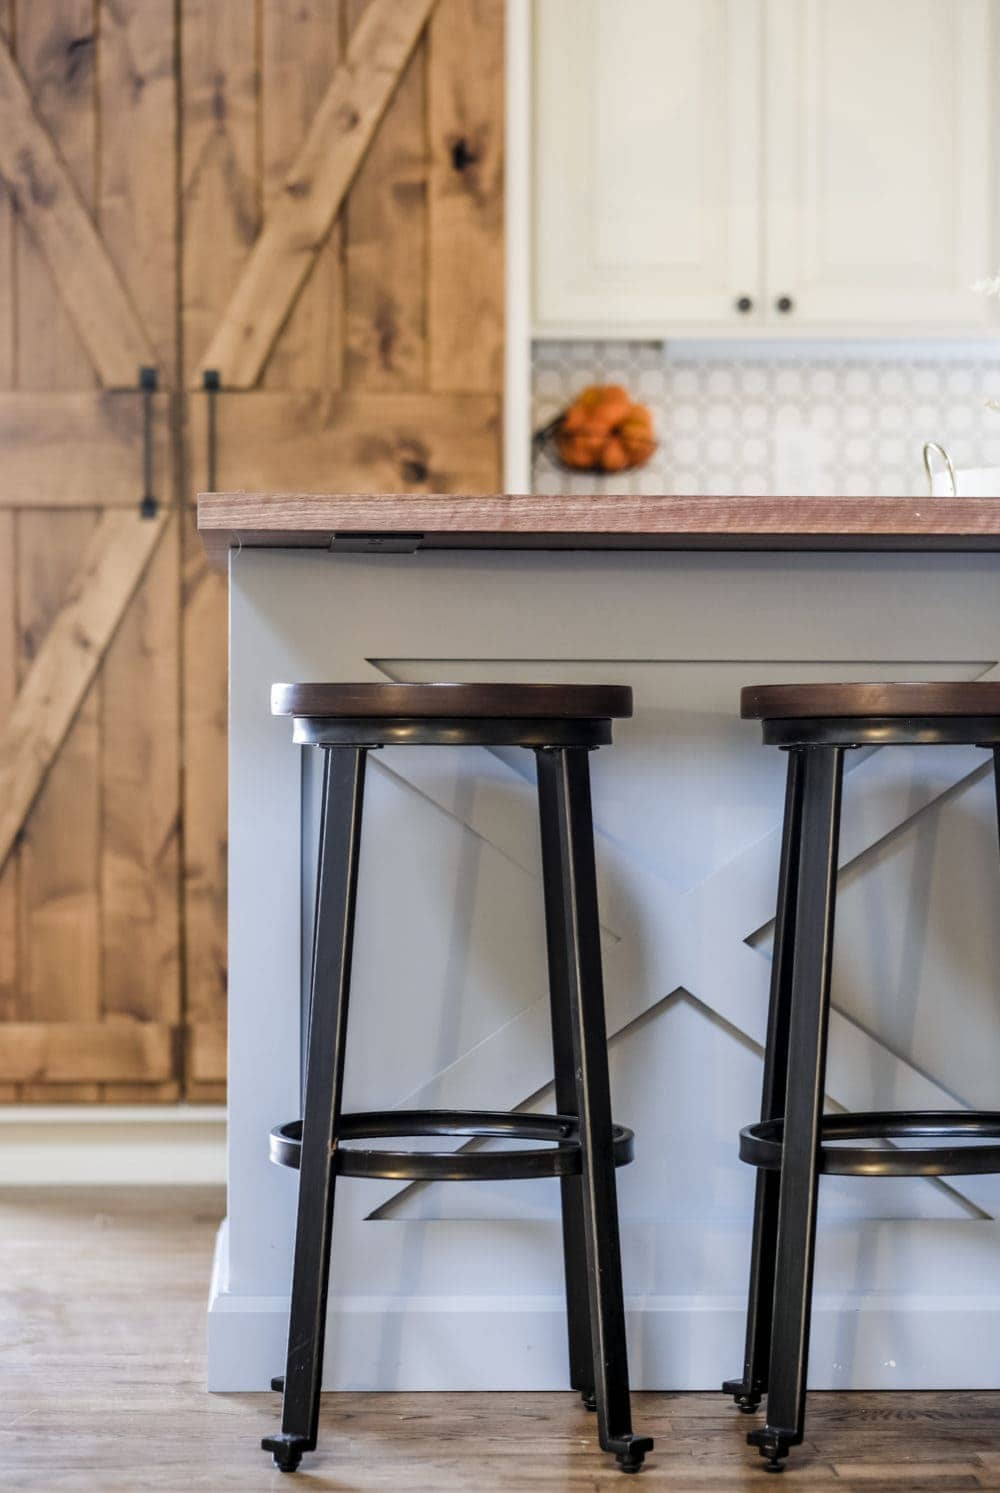 Rustic bar stools in front of a blue kitchen island